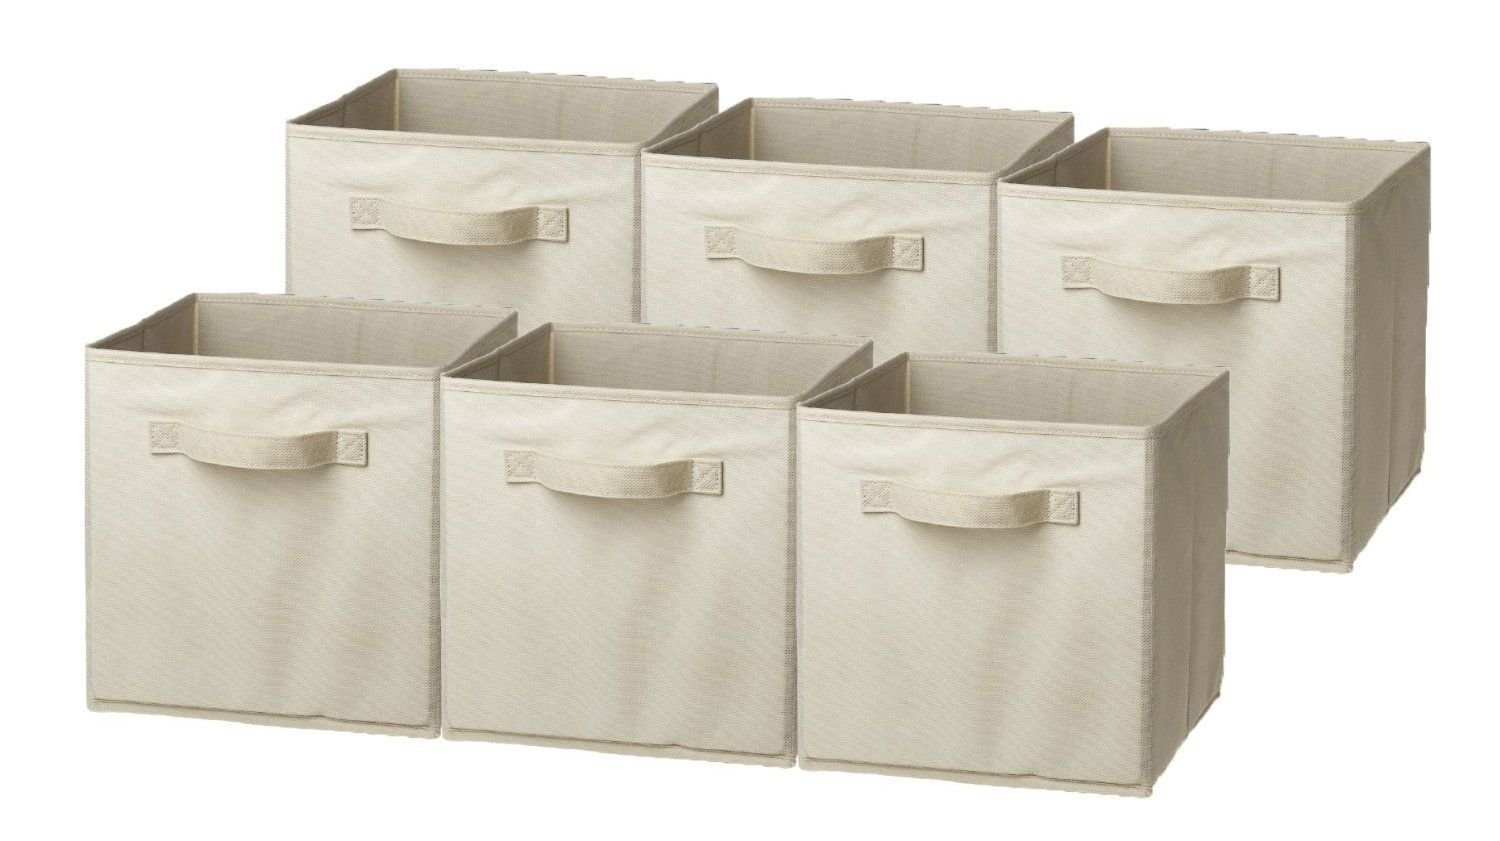 New Basket Bin Foldable collapsible Storage Cube containers, 6 Pack, Beige